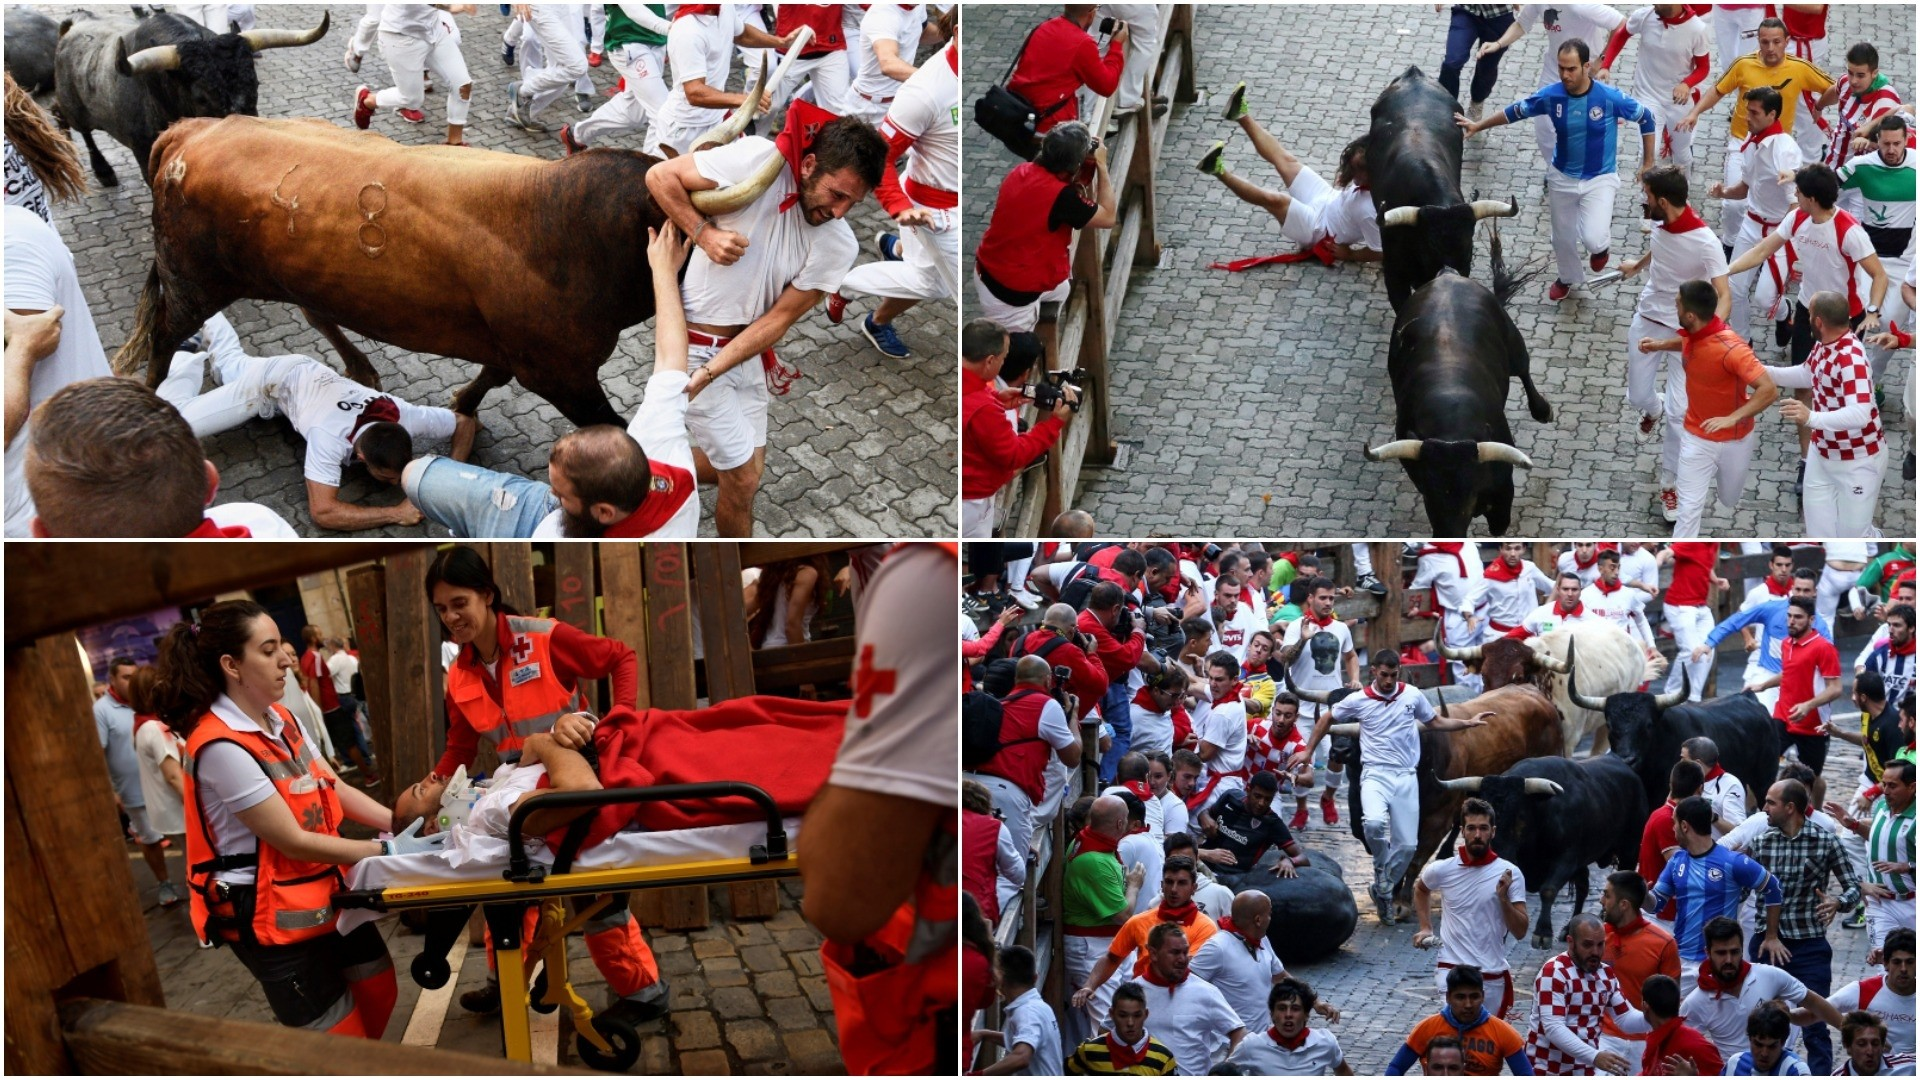 Several 'mozos' or runners are chased by some bulls during the 8th and final bull run of the Festival of San Fermin 2018 in Pamplona, July 14 2018. (clockwise: EPA/REUTERS/EPA/AP Photos)